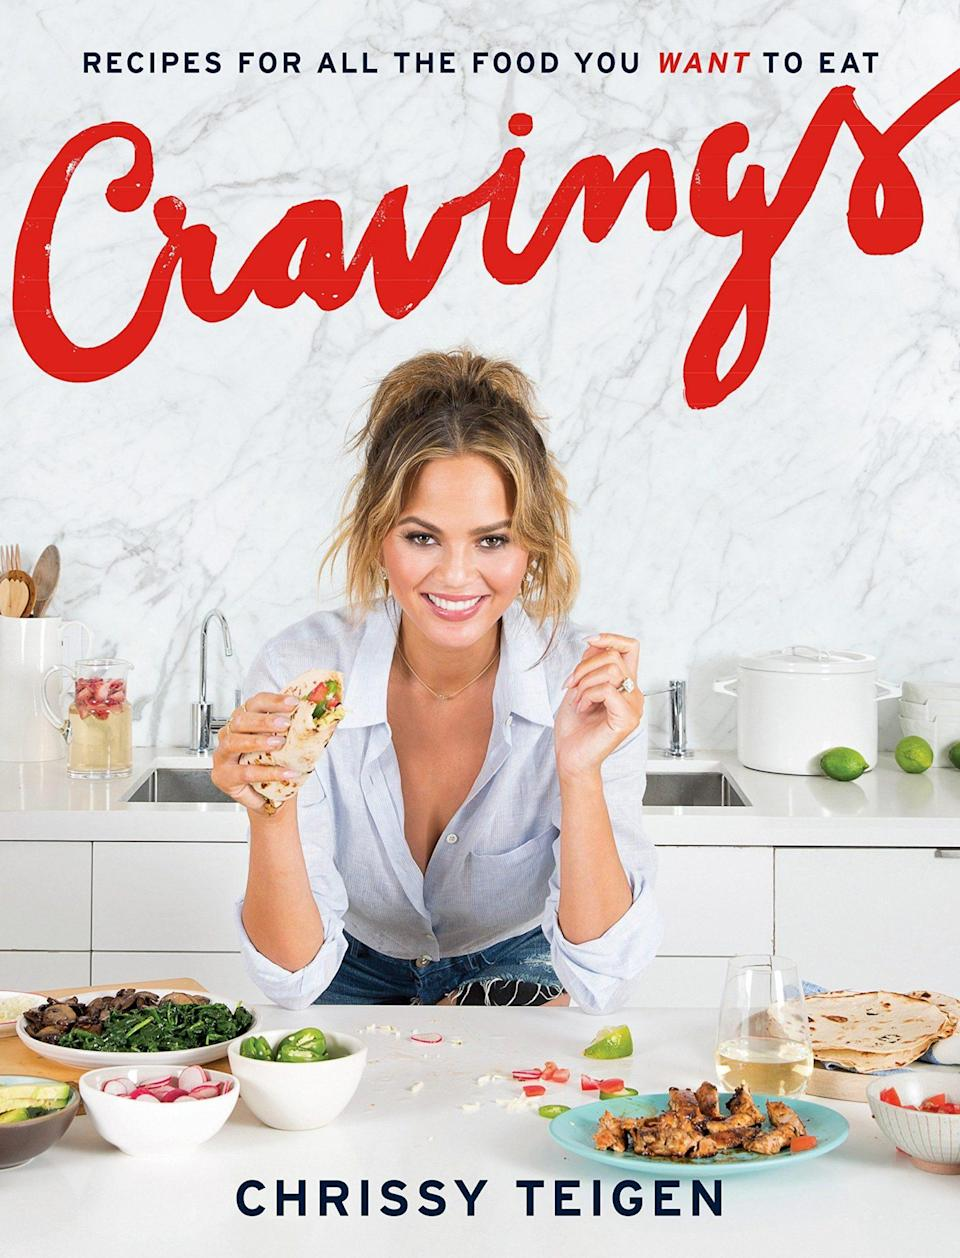 "<p>""[Chrissy Teigen] has the best recipes for everything, and I think it's a cool gift for foodies, or for someone who loves spending time in the kitchen. It's also a great gift for anyone who wants to learn how to cook!""</p> <p><strong>Buy It!</strong> $16.85; <a href=""https://www.amazon.com/Cravings-Recipes-All-Food-Want/dp/1101903910/ref=asc_df_1101903910/?tag=hyprod-20&linkCode=df0&hvadid=265933302123&hvpos=&hvnetw=g&hvrand=7190311282496018637&hvpone=&hvptwo=&hvqmt=&hvdev=c&hvdvcmdl=&hvlocint=&hvlocphy=9067609&hvtargid=pla-404294405446&psc=1"" rel=""nofollow noopener"" target=""_blank"" data-ylk=""slk:amazon.com"" class=""link rapid-noclick-resp"">amazon.com</a></p>"